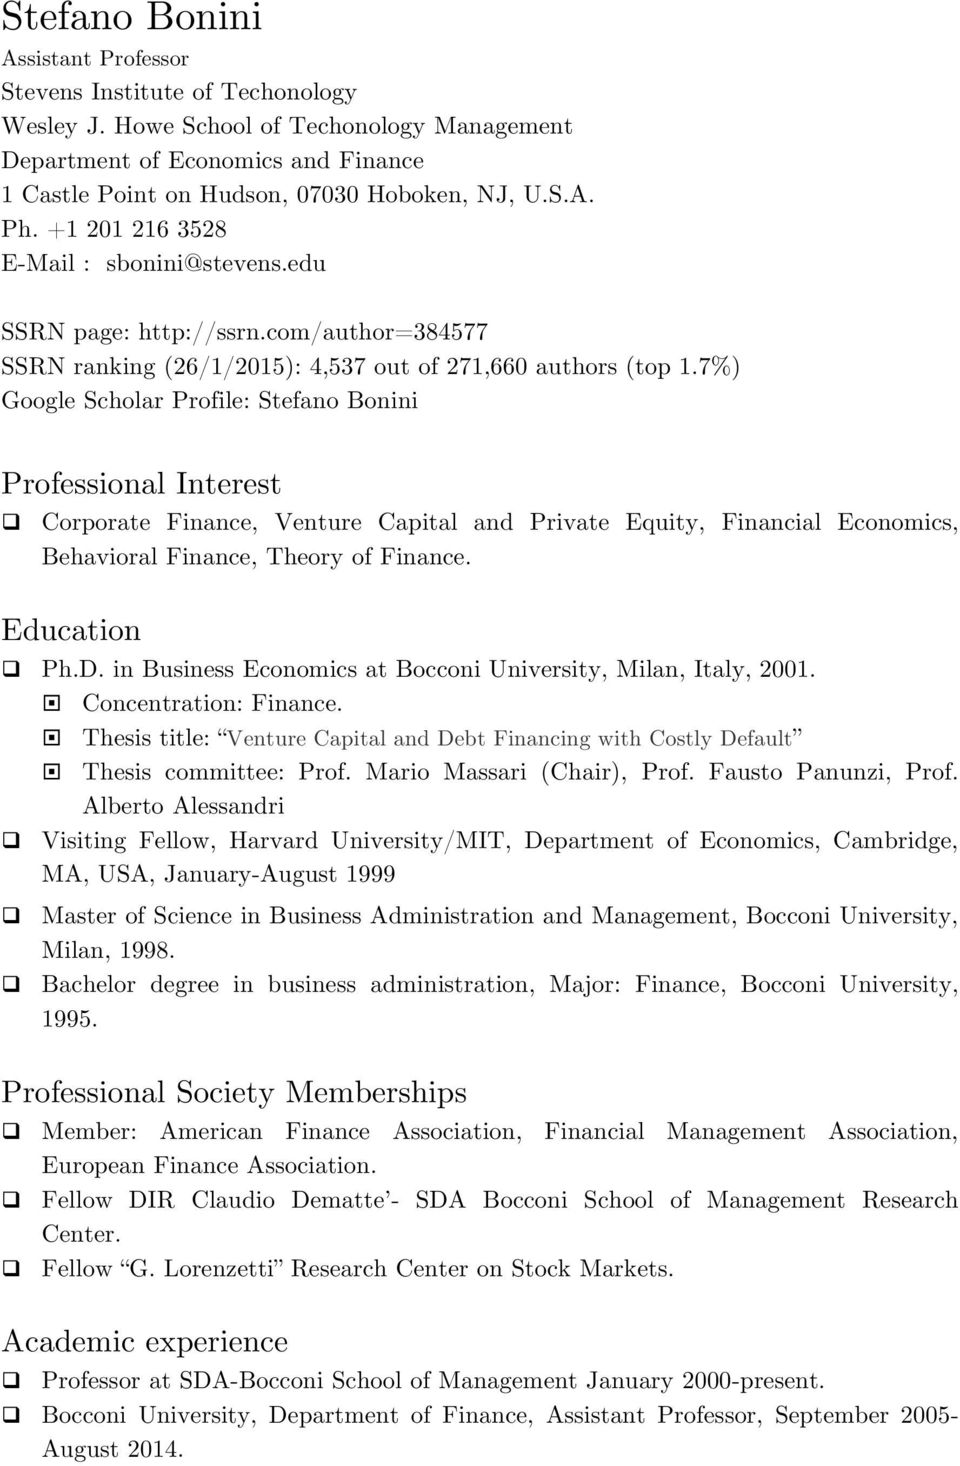 7%) Google Scholar Profile: Stefano Bonini Professional Interest! Corporate Finance, Venture Capital and Private Equity, Financial Economics, Behavioral Finance, Theory of Finance. Education! Ph.D.